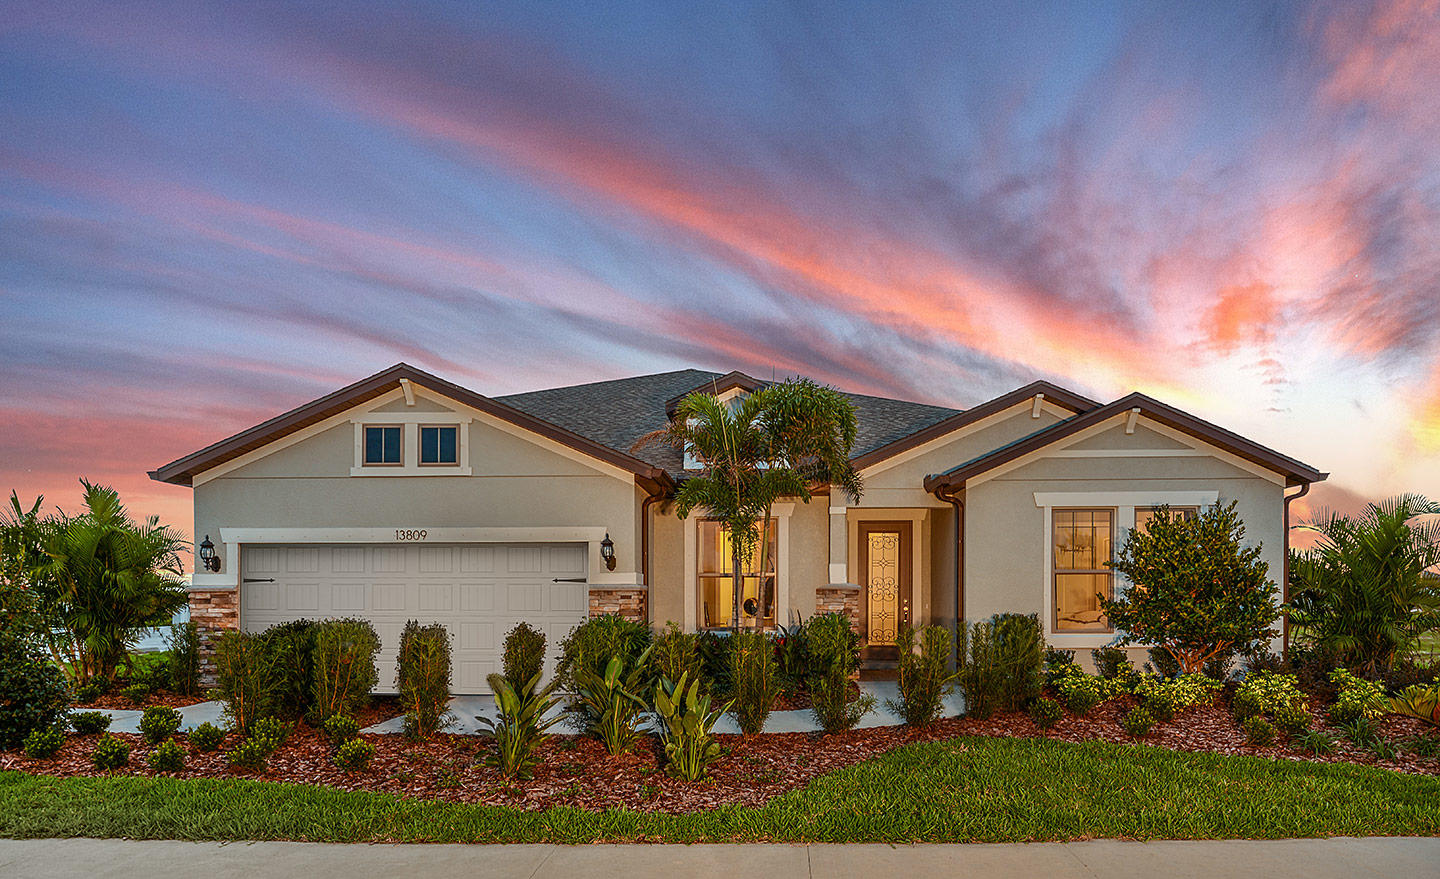 K-Bar Ranch by Pulte Homes image 0